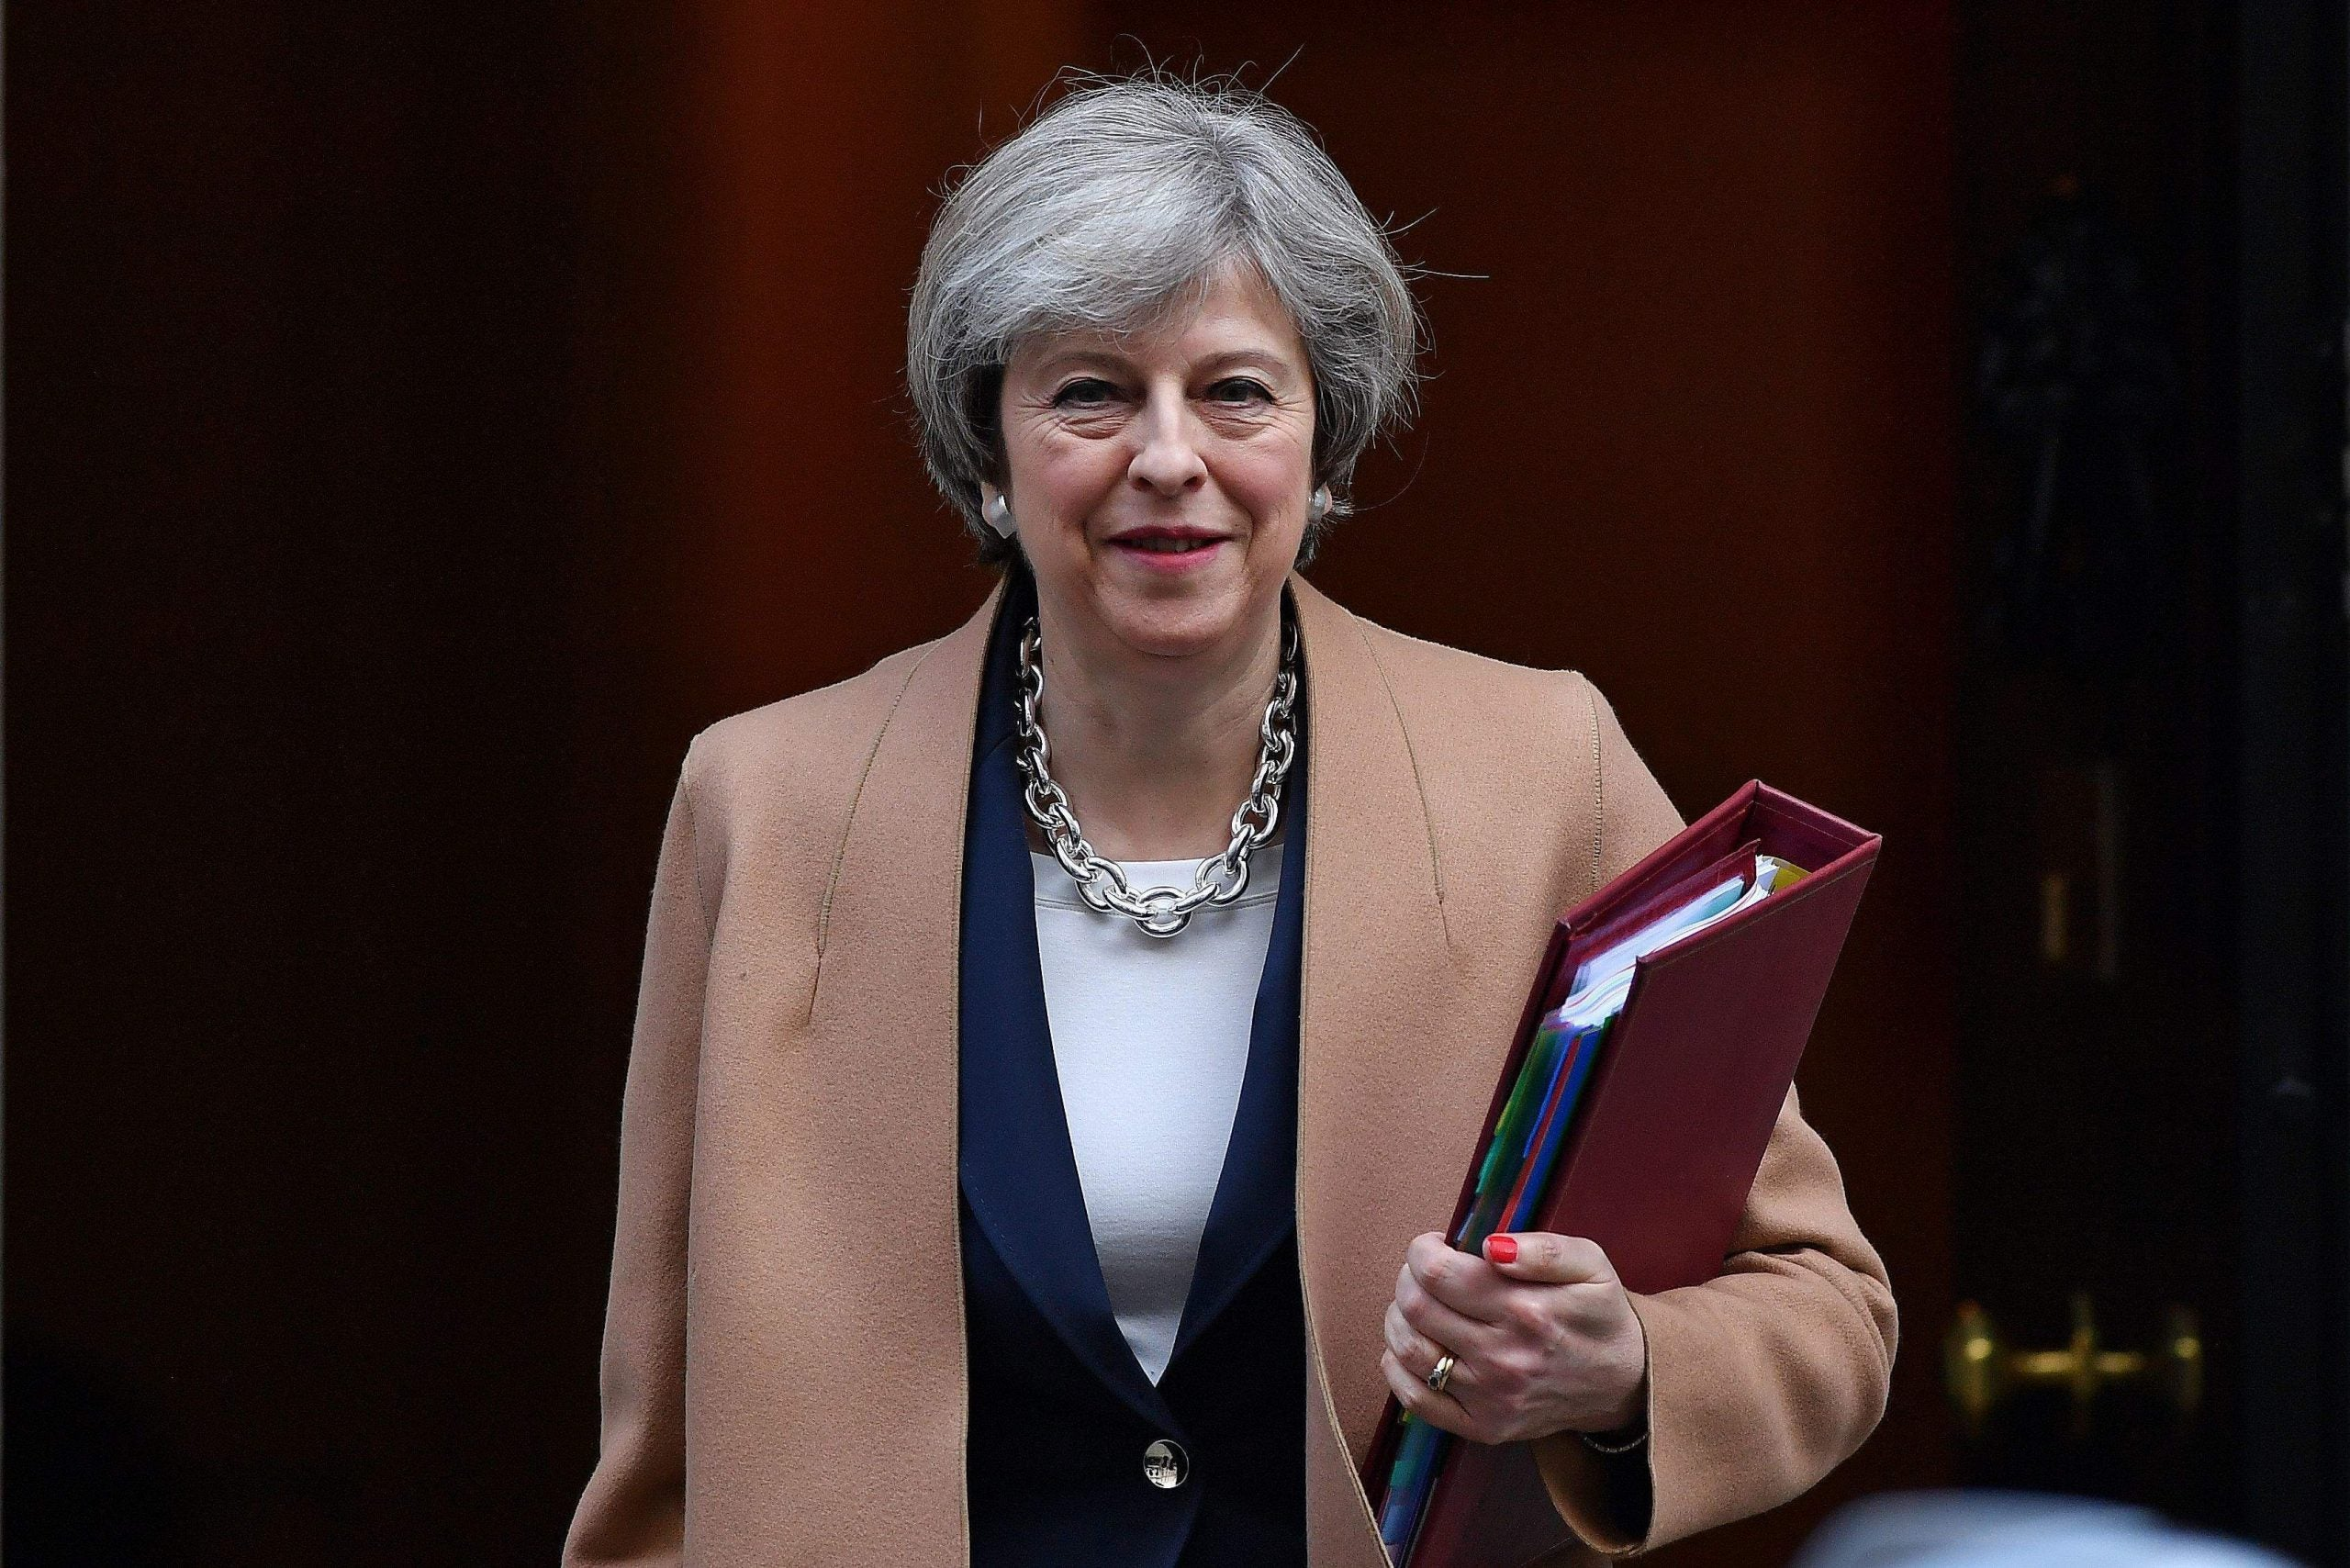 For a softer Brexit, Theresa May needs to face a tougher opposition